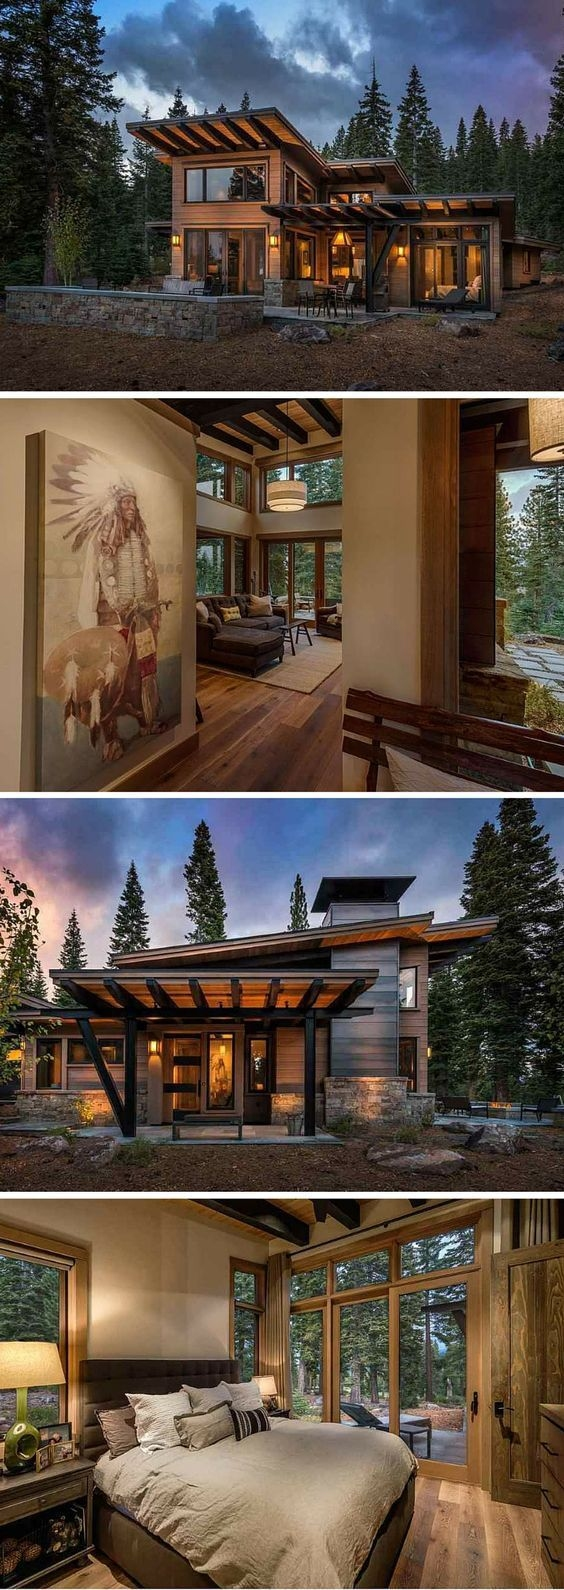 72 Mountain Chalet House Plans Best Of Pin by Bashir aslanian On My Dream House